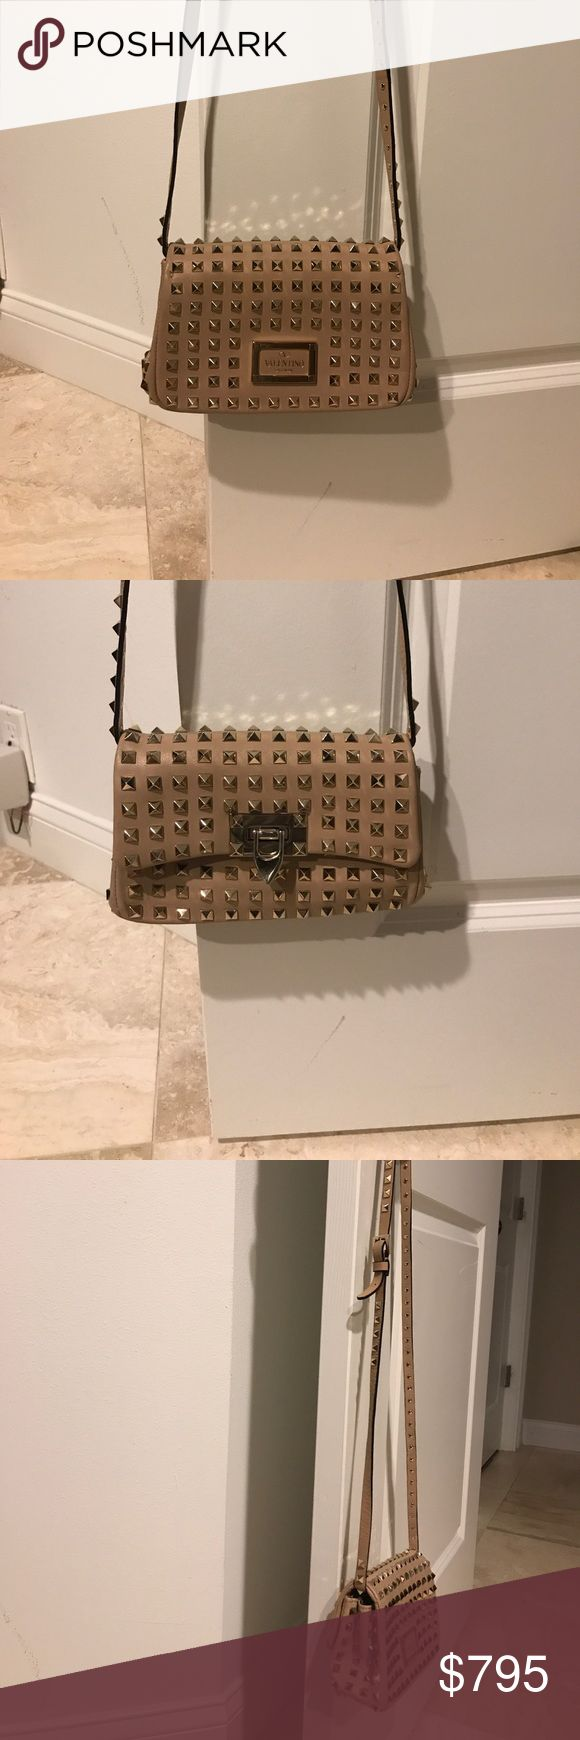 Valentino Rockstud cross body clutch bag. Nude I've owned this for a few years. Normal wear with some scratches.  Good condition. No missing studs or tears in leather. Valentino Bags Crossbody Bags